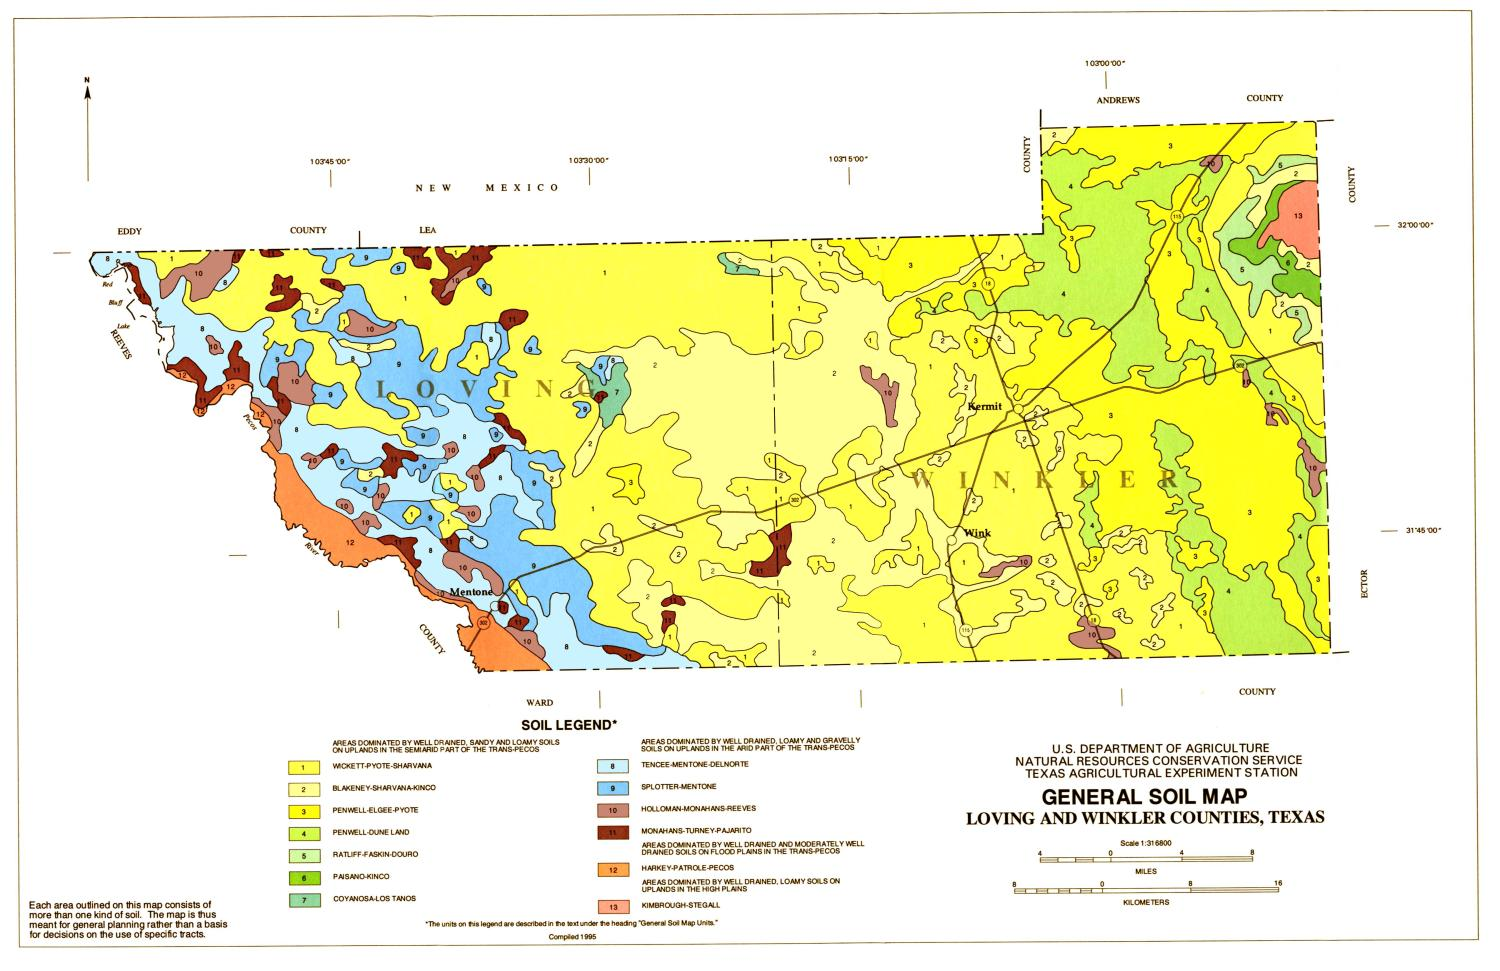 General Soil Map Loving And Winkler Counties Texas The Portal - Counties of texas map